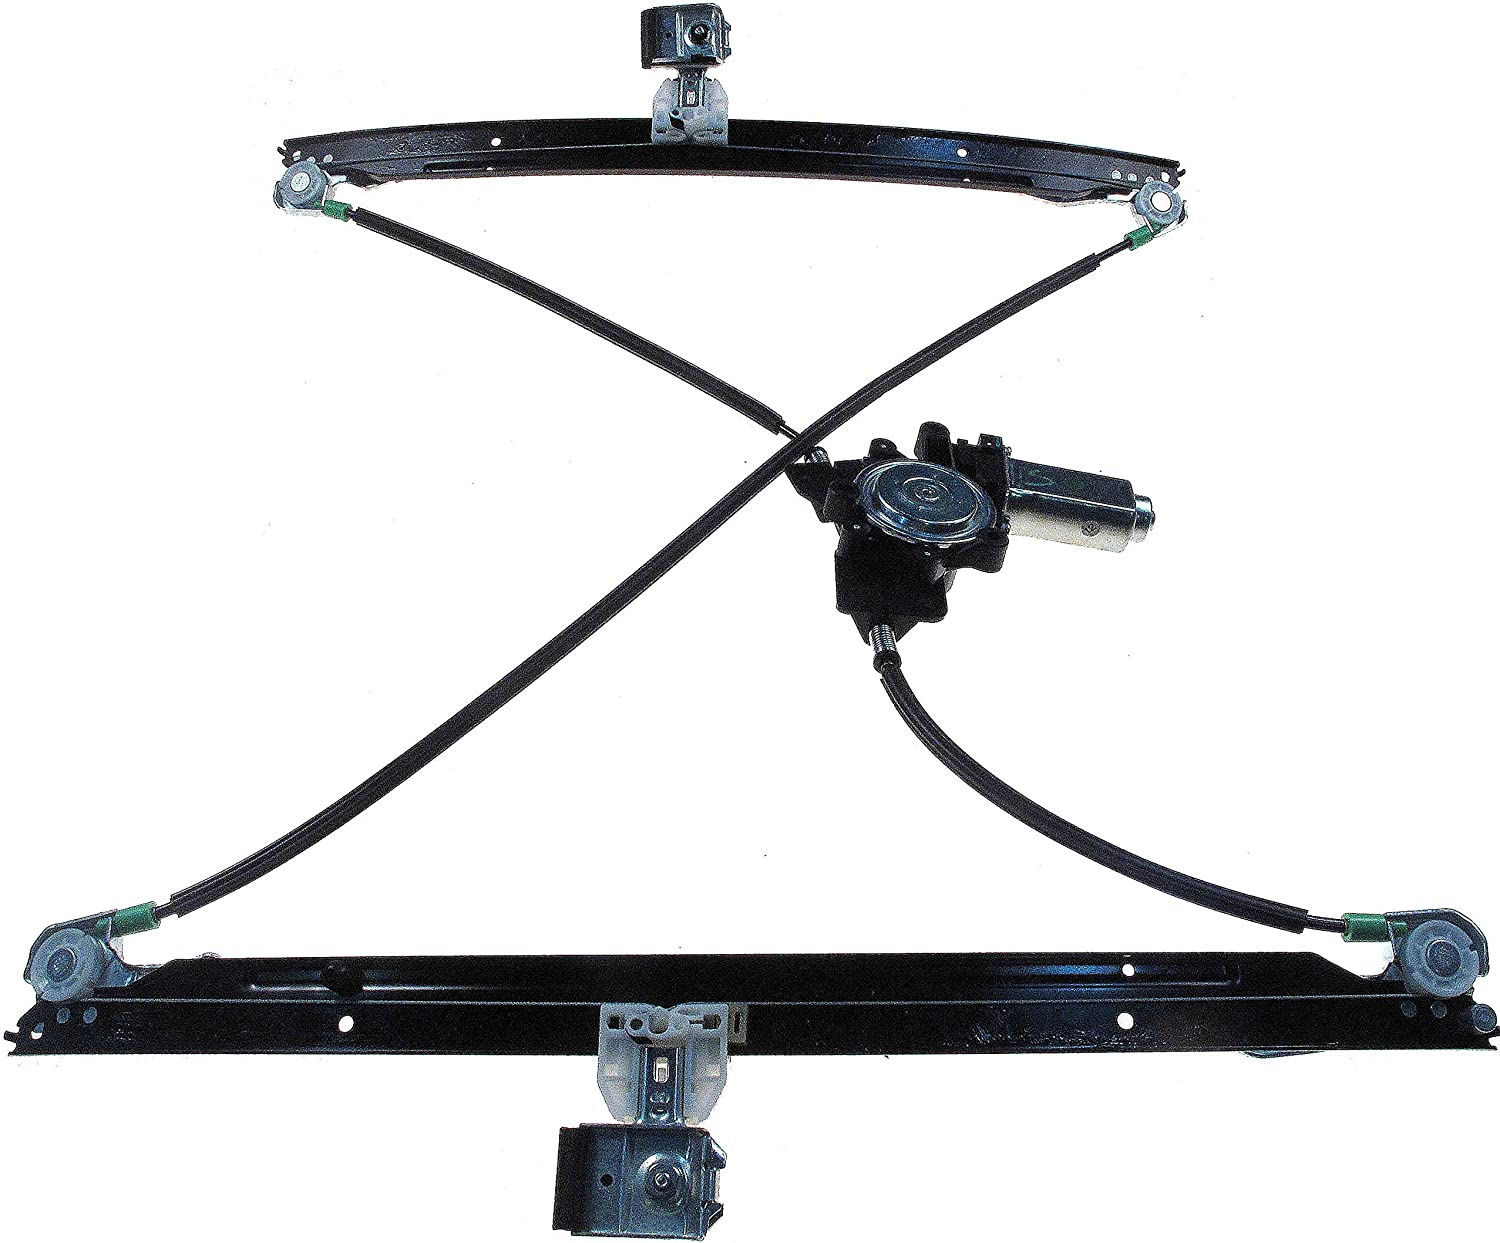 Power Window Regulator with Motor Assembly Replacement Front Left Drivers Side Window Regulator fit for 2004-2007 Chrysler Town and Country 2004-2007 Dodge Caravan//Grand Caravan 4894527AA 741-534